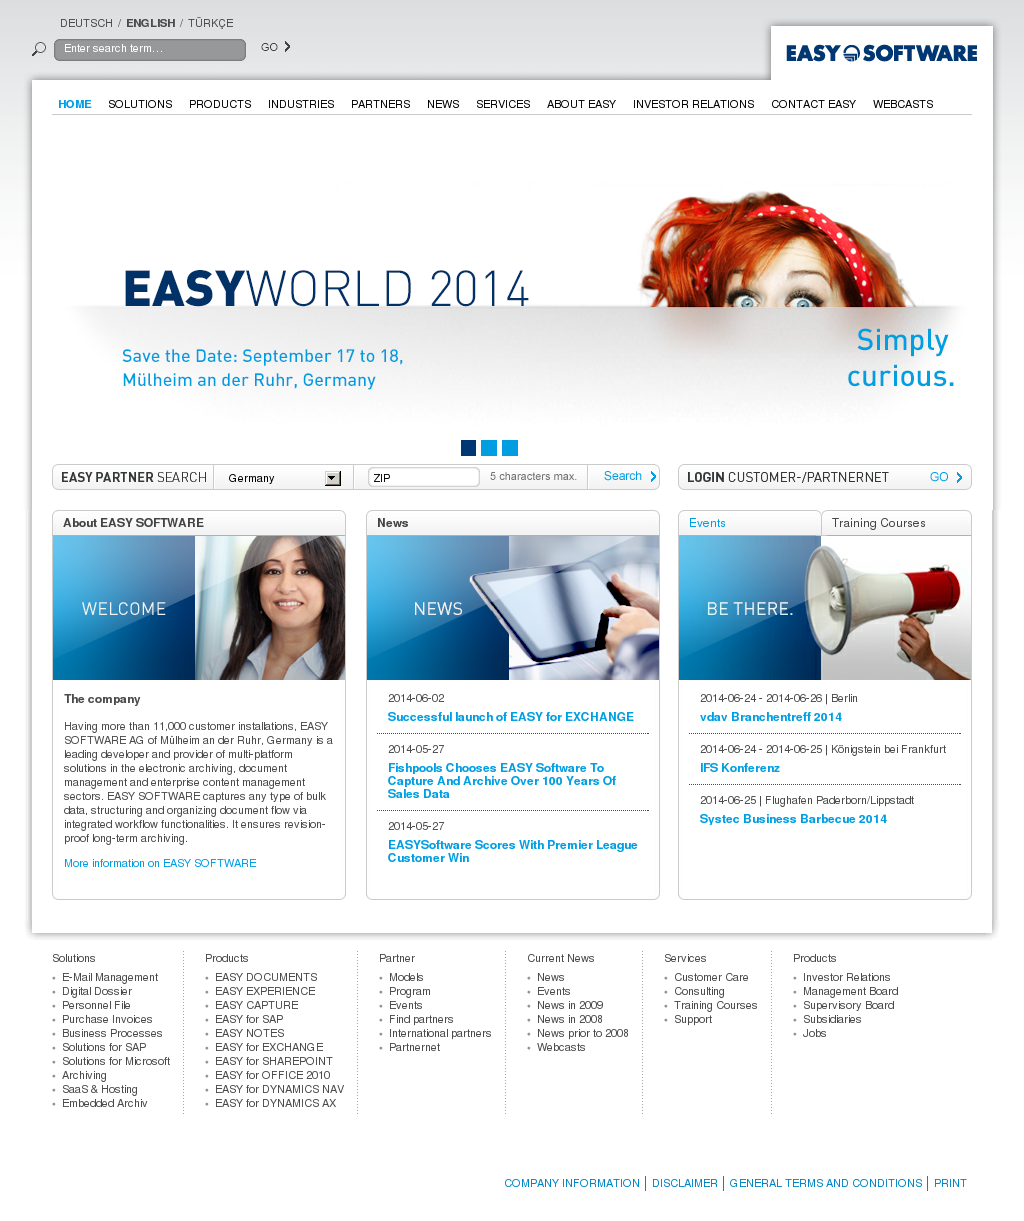 Easy Software Competitors, Revenue and Employees - Owler